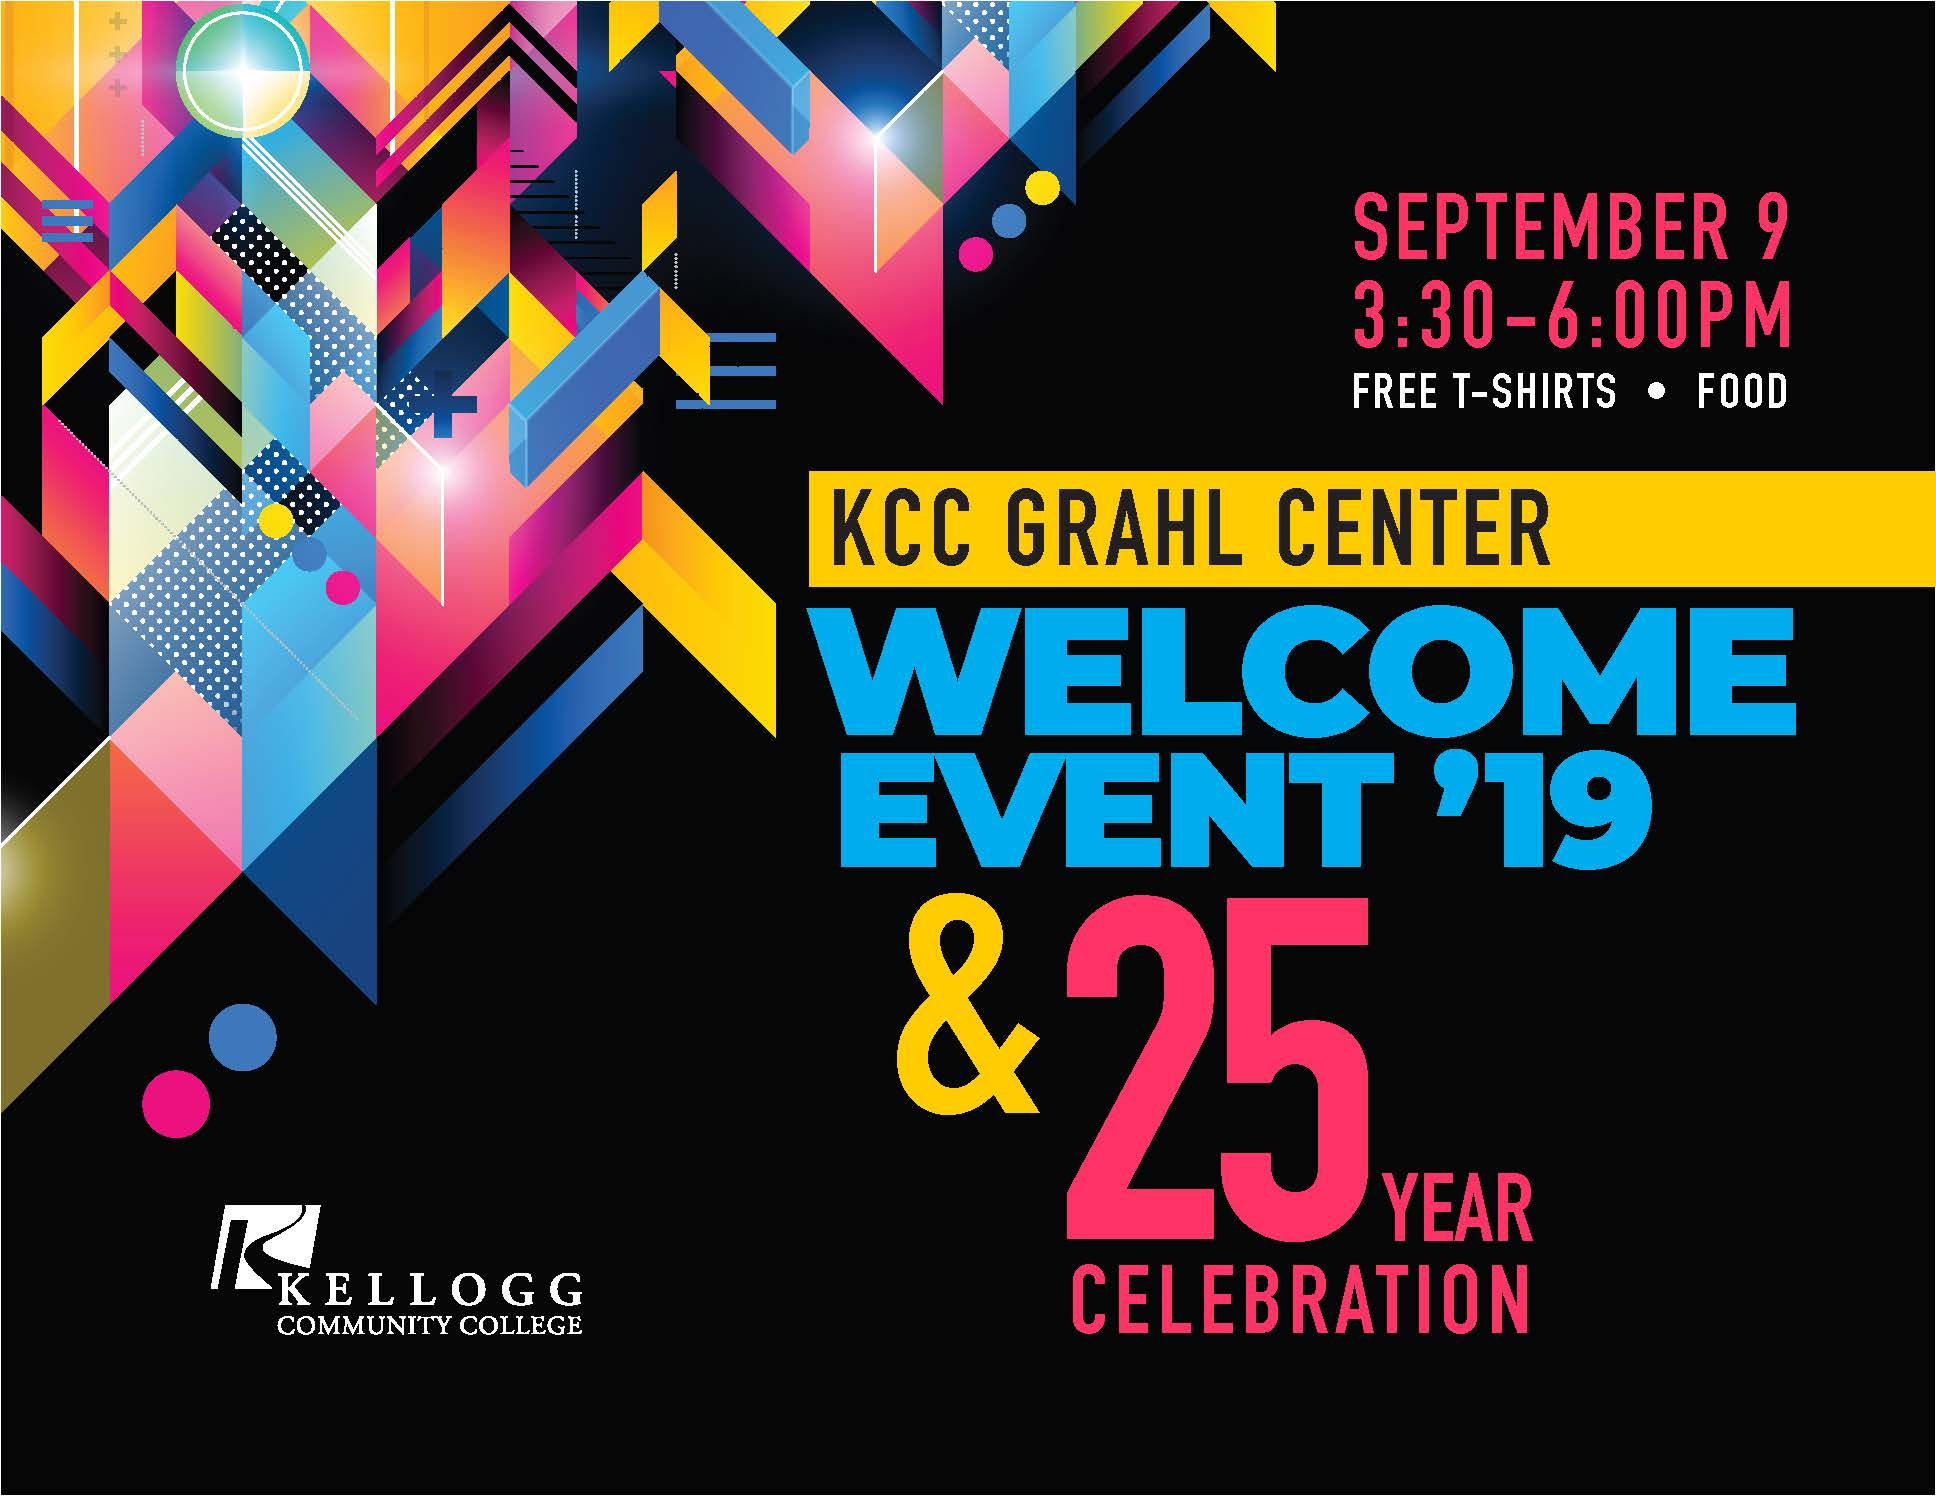 A text slide promoting the Sept. 9 Grahl Center event.